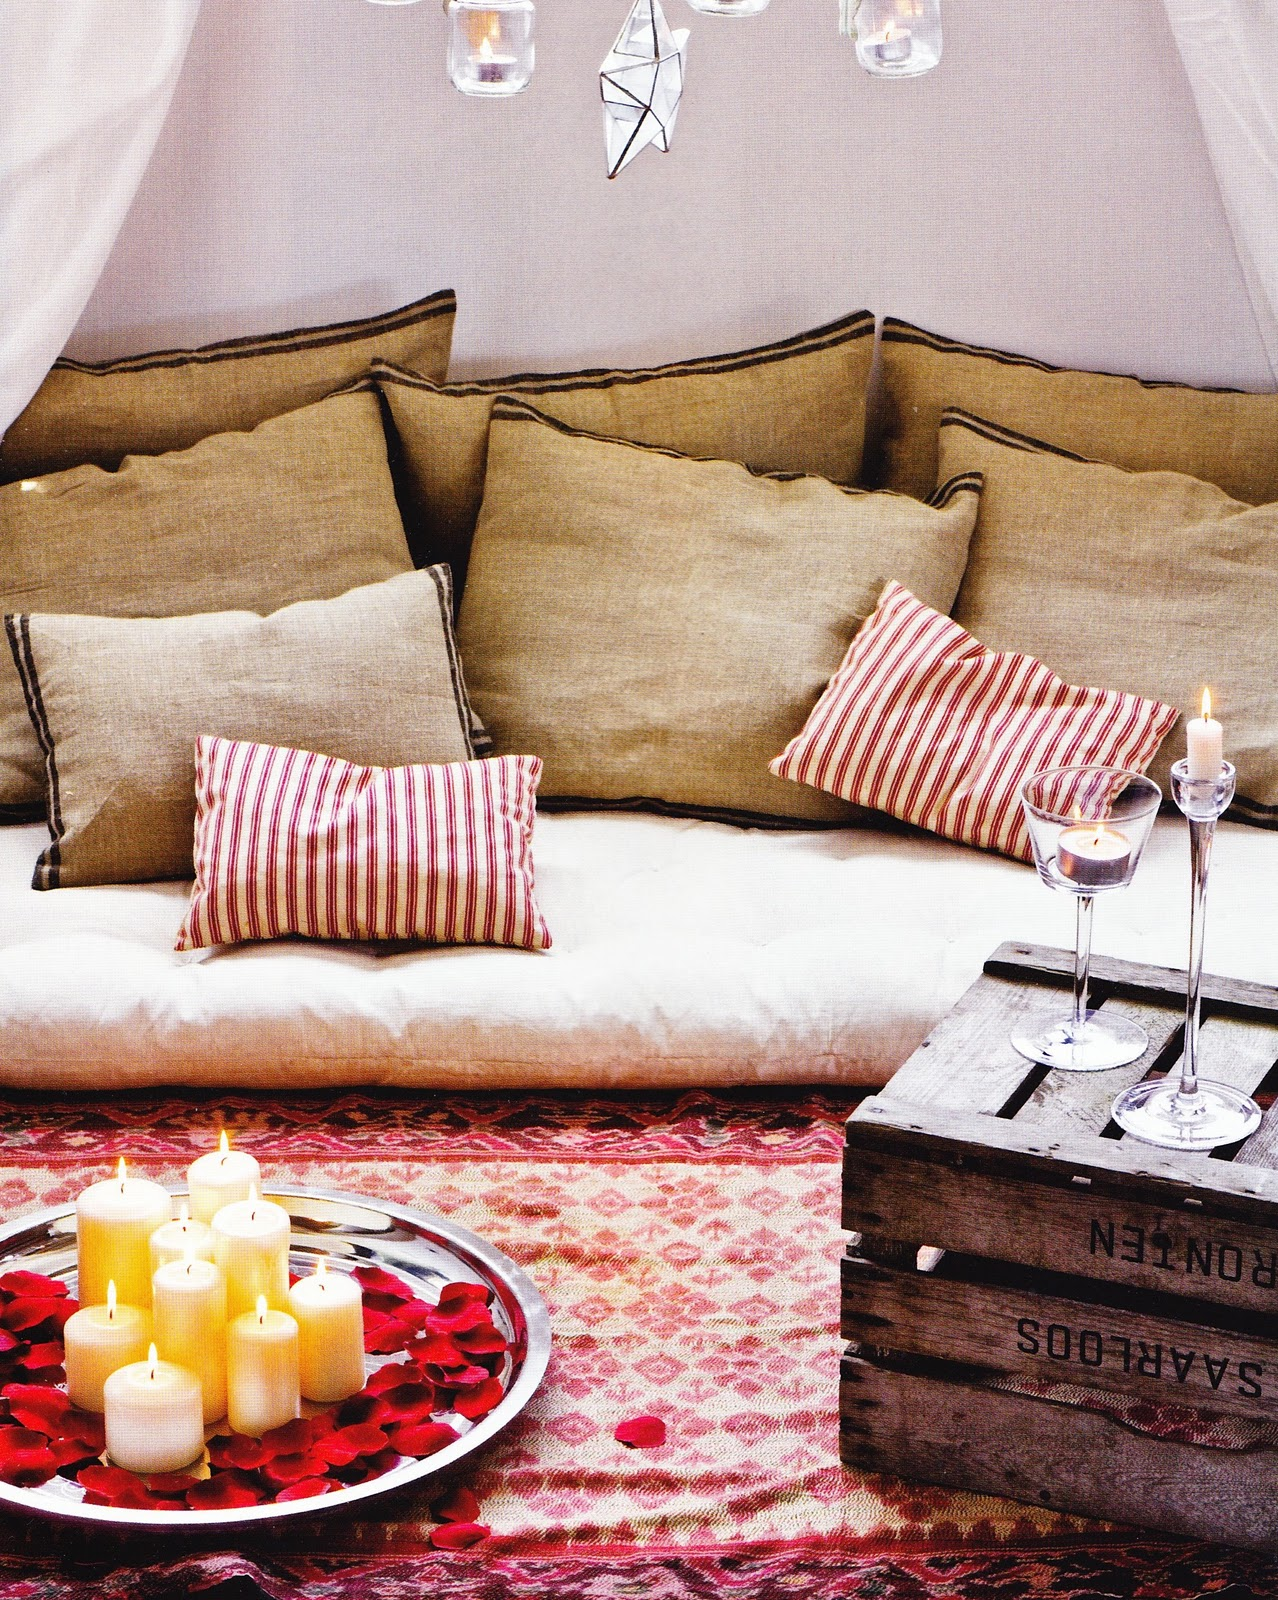 Upside down crate makes a low table   via Habitania. LET S STAY  Low Sofa  Bed  Nap mat and Floor Cushion Ideas